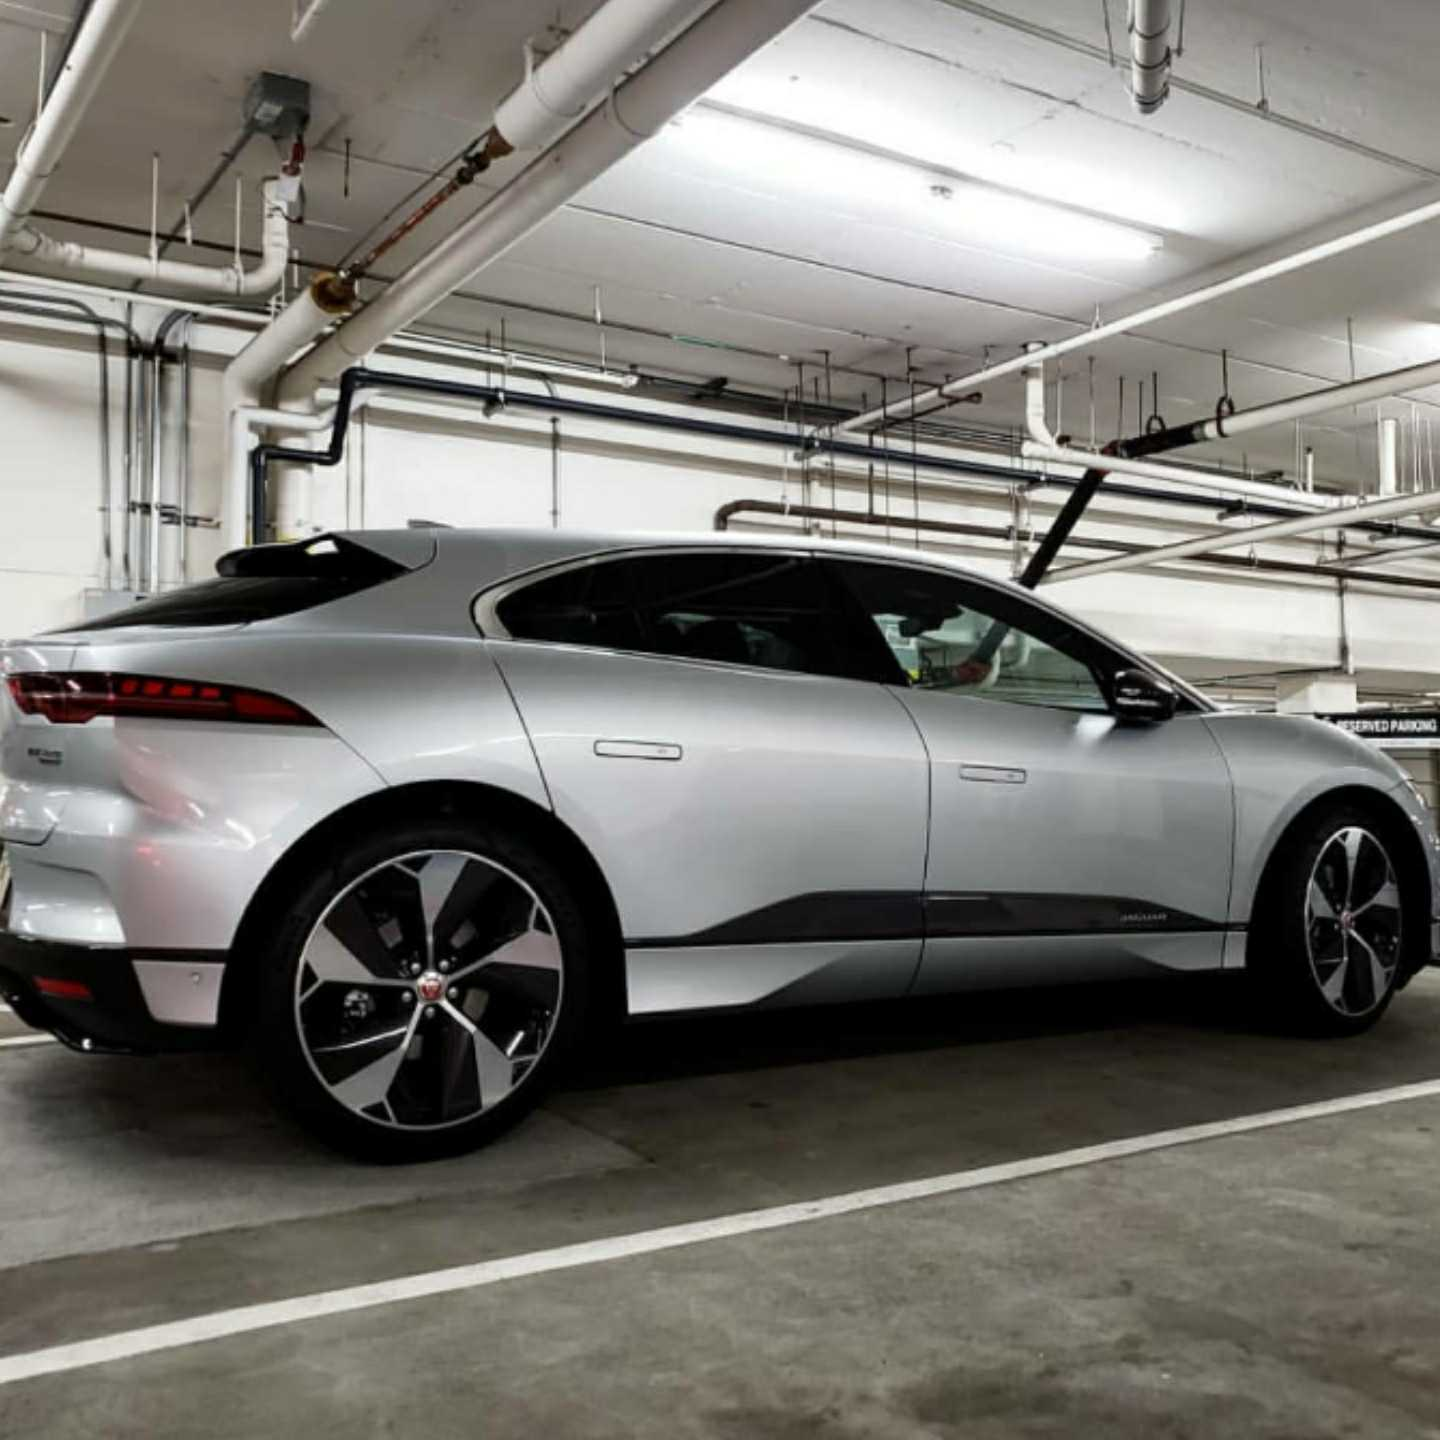 All electric, electric cars, electric vehicles, evs, Vaughn Lowery, 360 MAGAZINE, jaguar, suv, i-pace